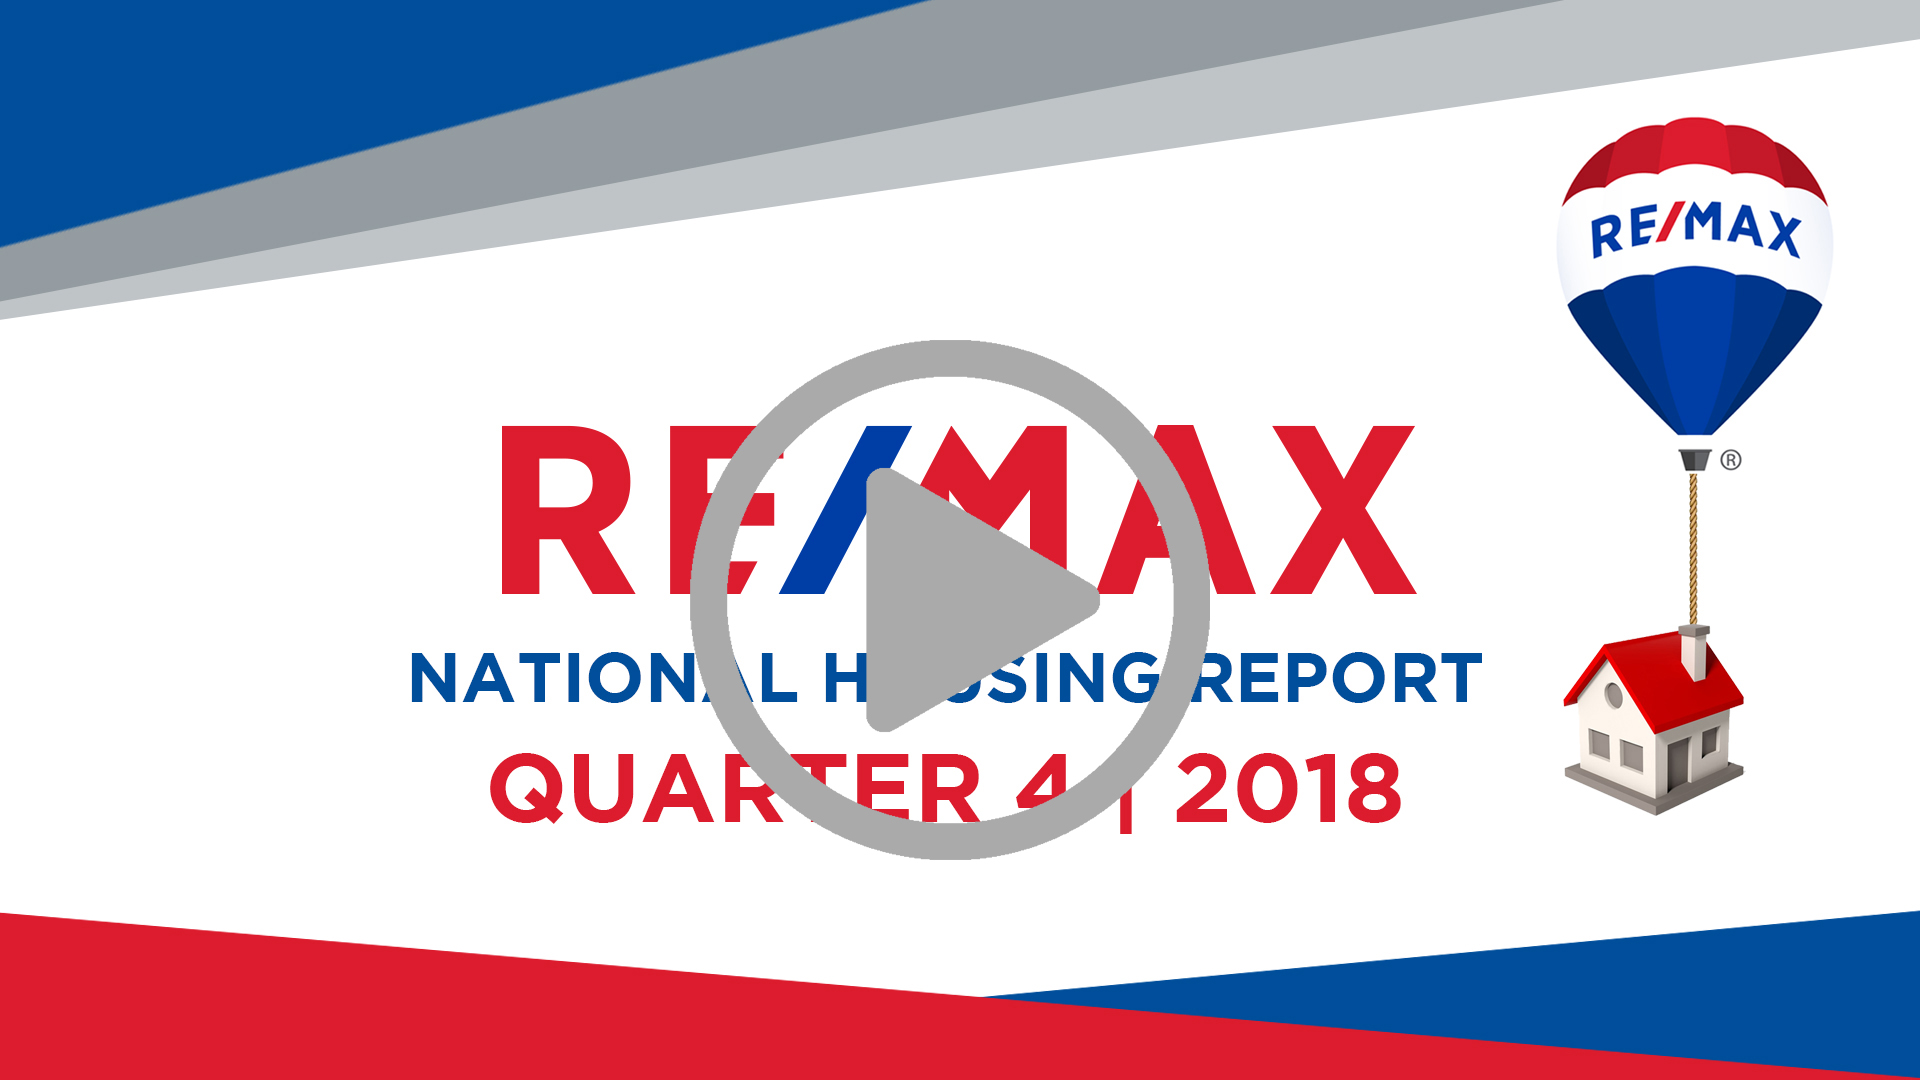 RE/MAX NATIONAL HOUSING REPORT Q4 2018